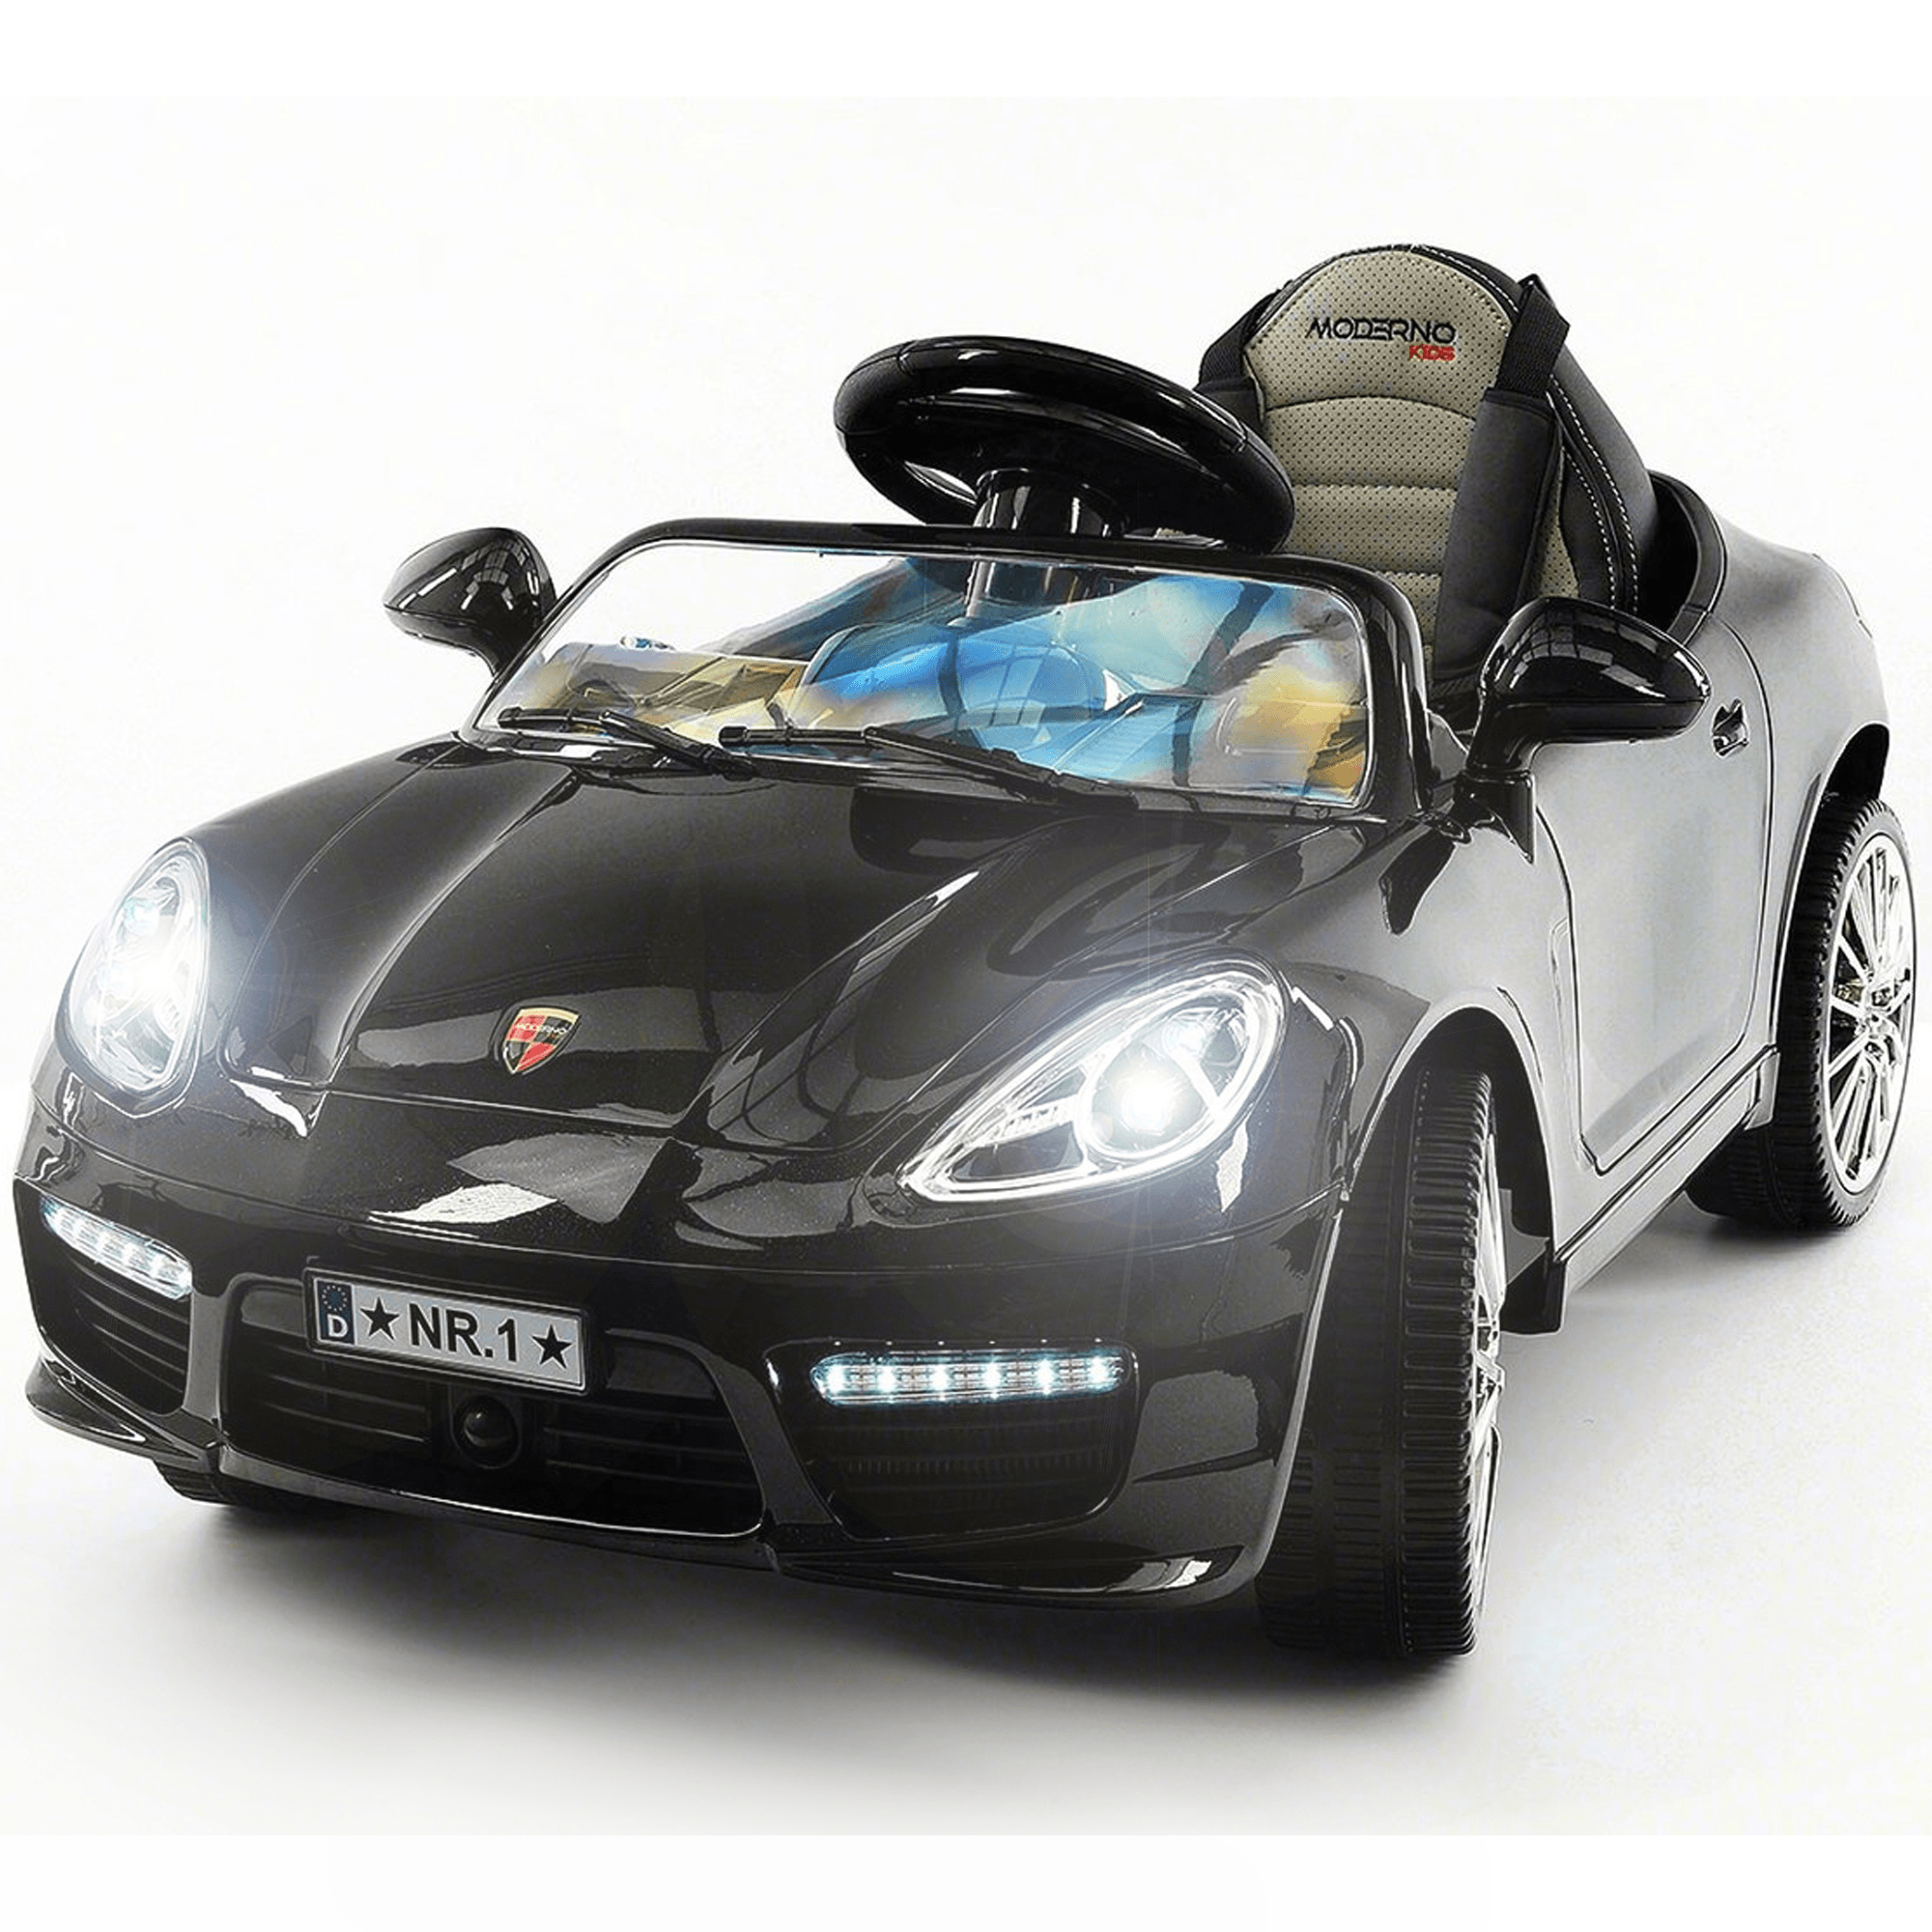 2019 Kids Sports 12V Ride On Car Battery Powered W/ Dining Table, Leather Seat, LED Lights